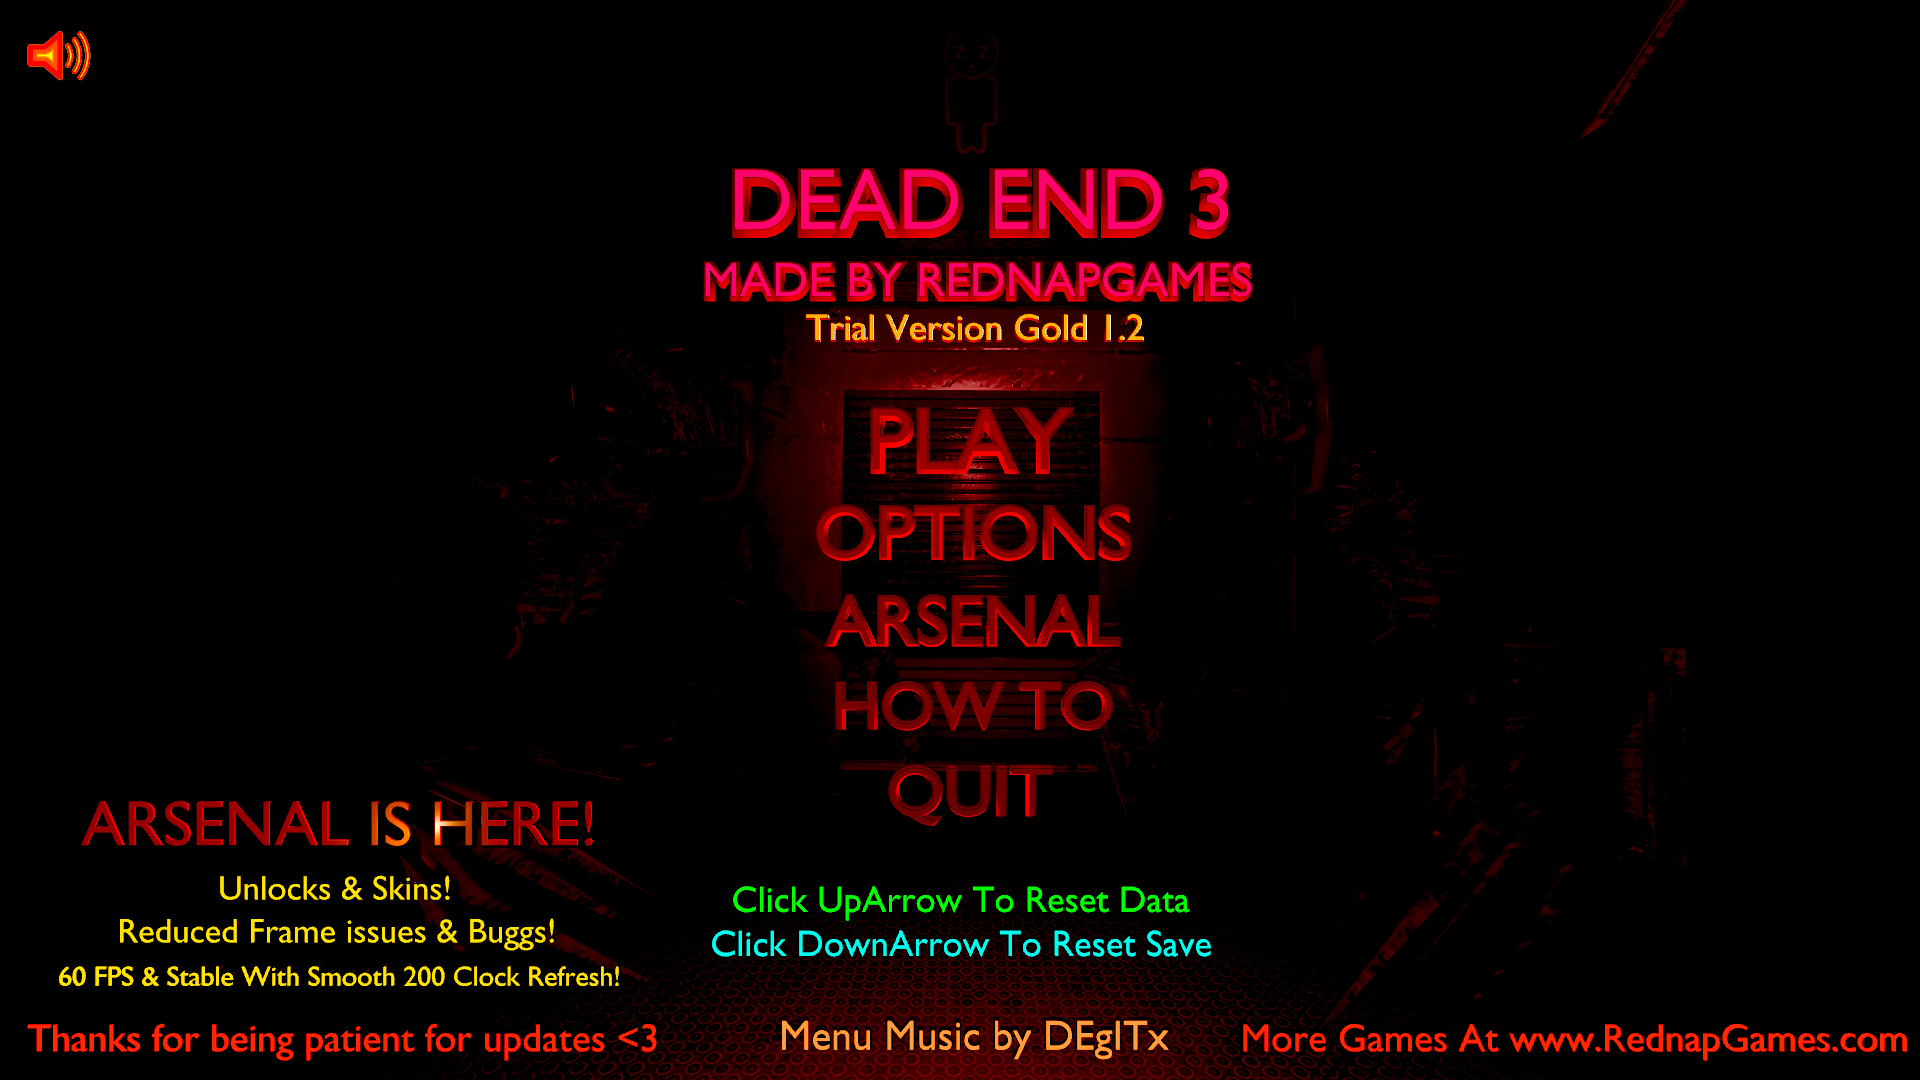 DEAD END 3 Full Trial Gold Final